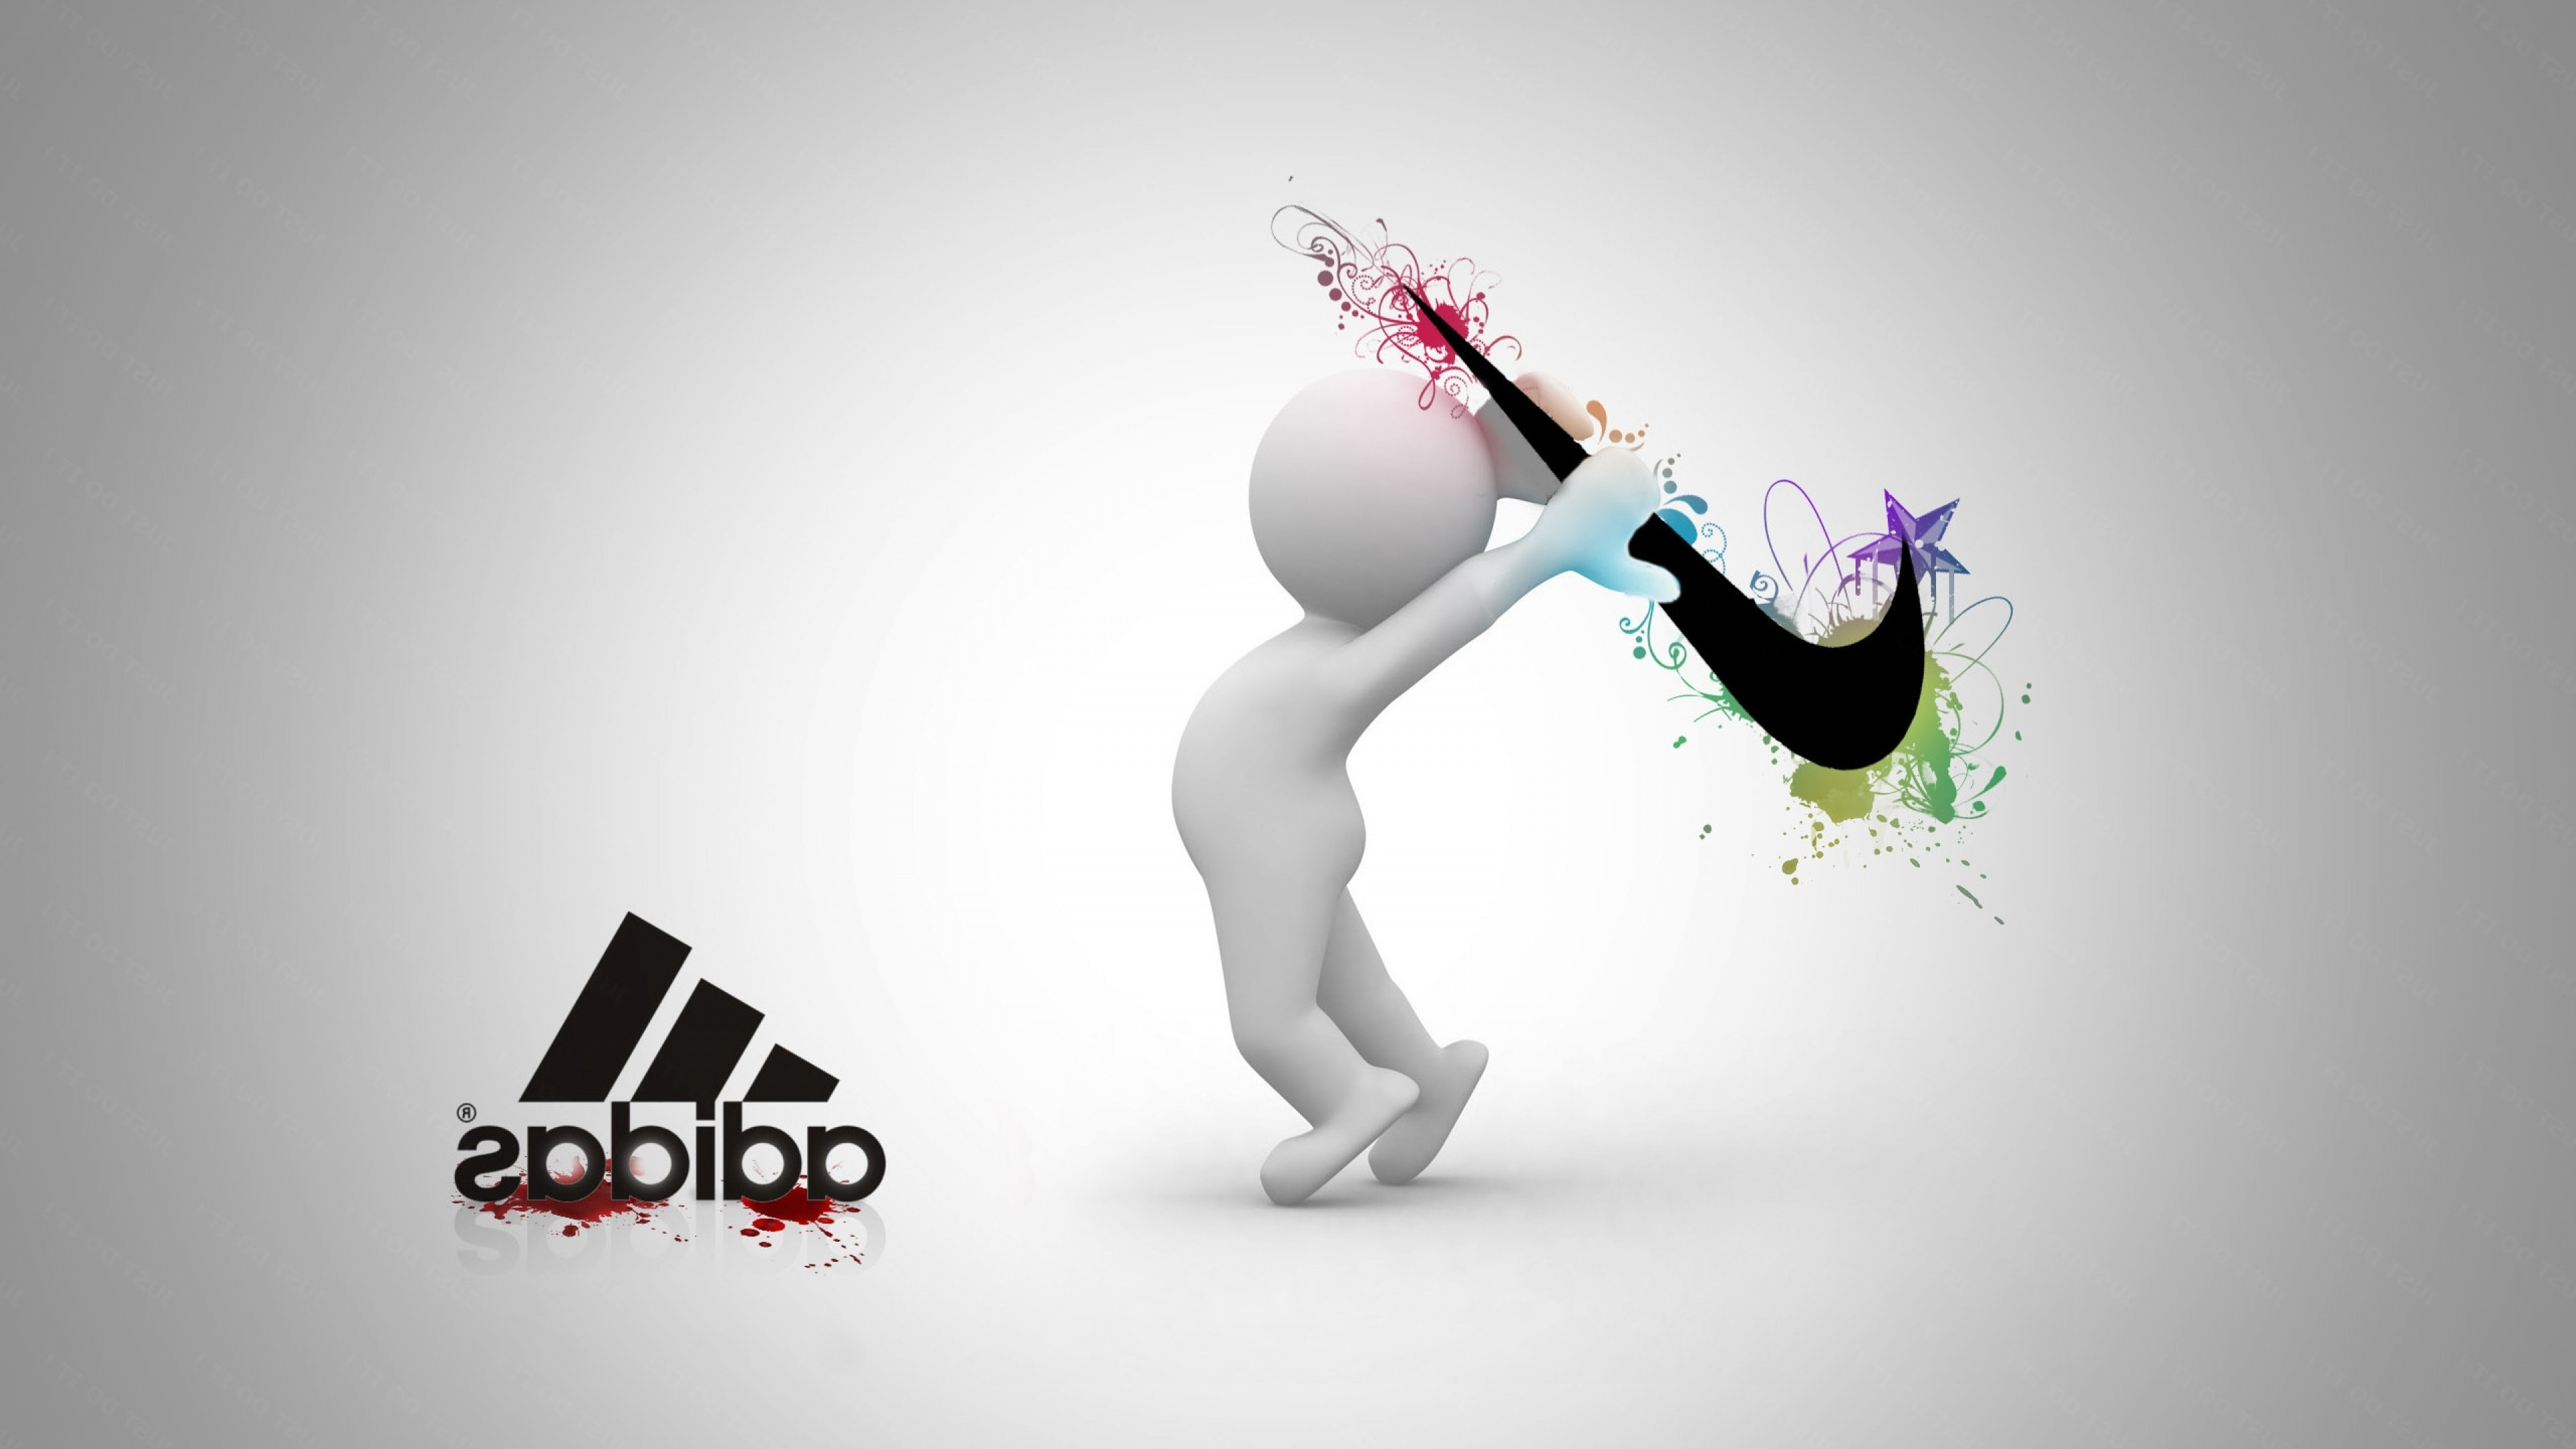 nike vs adidas, hd logo, 4k wallpapers, images, backgrounds, photos